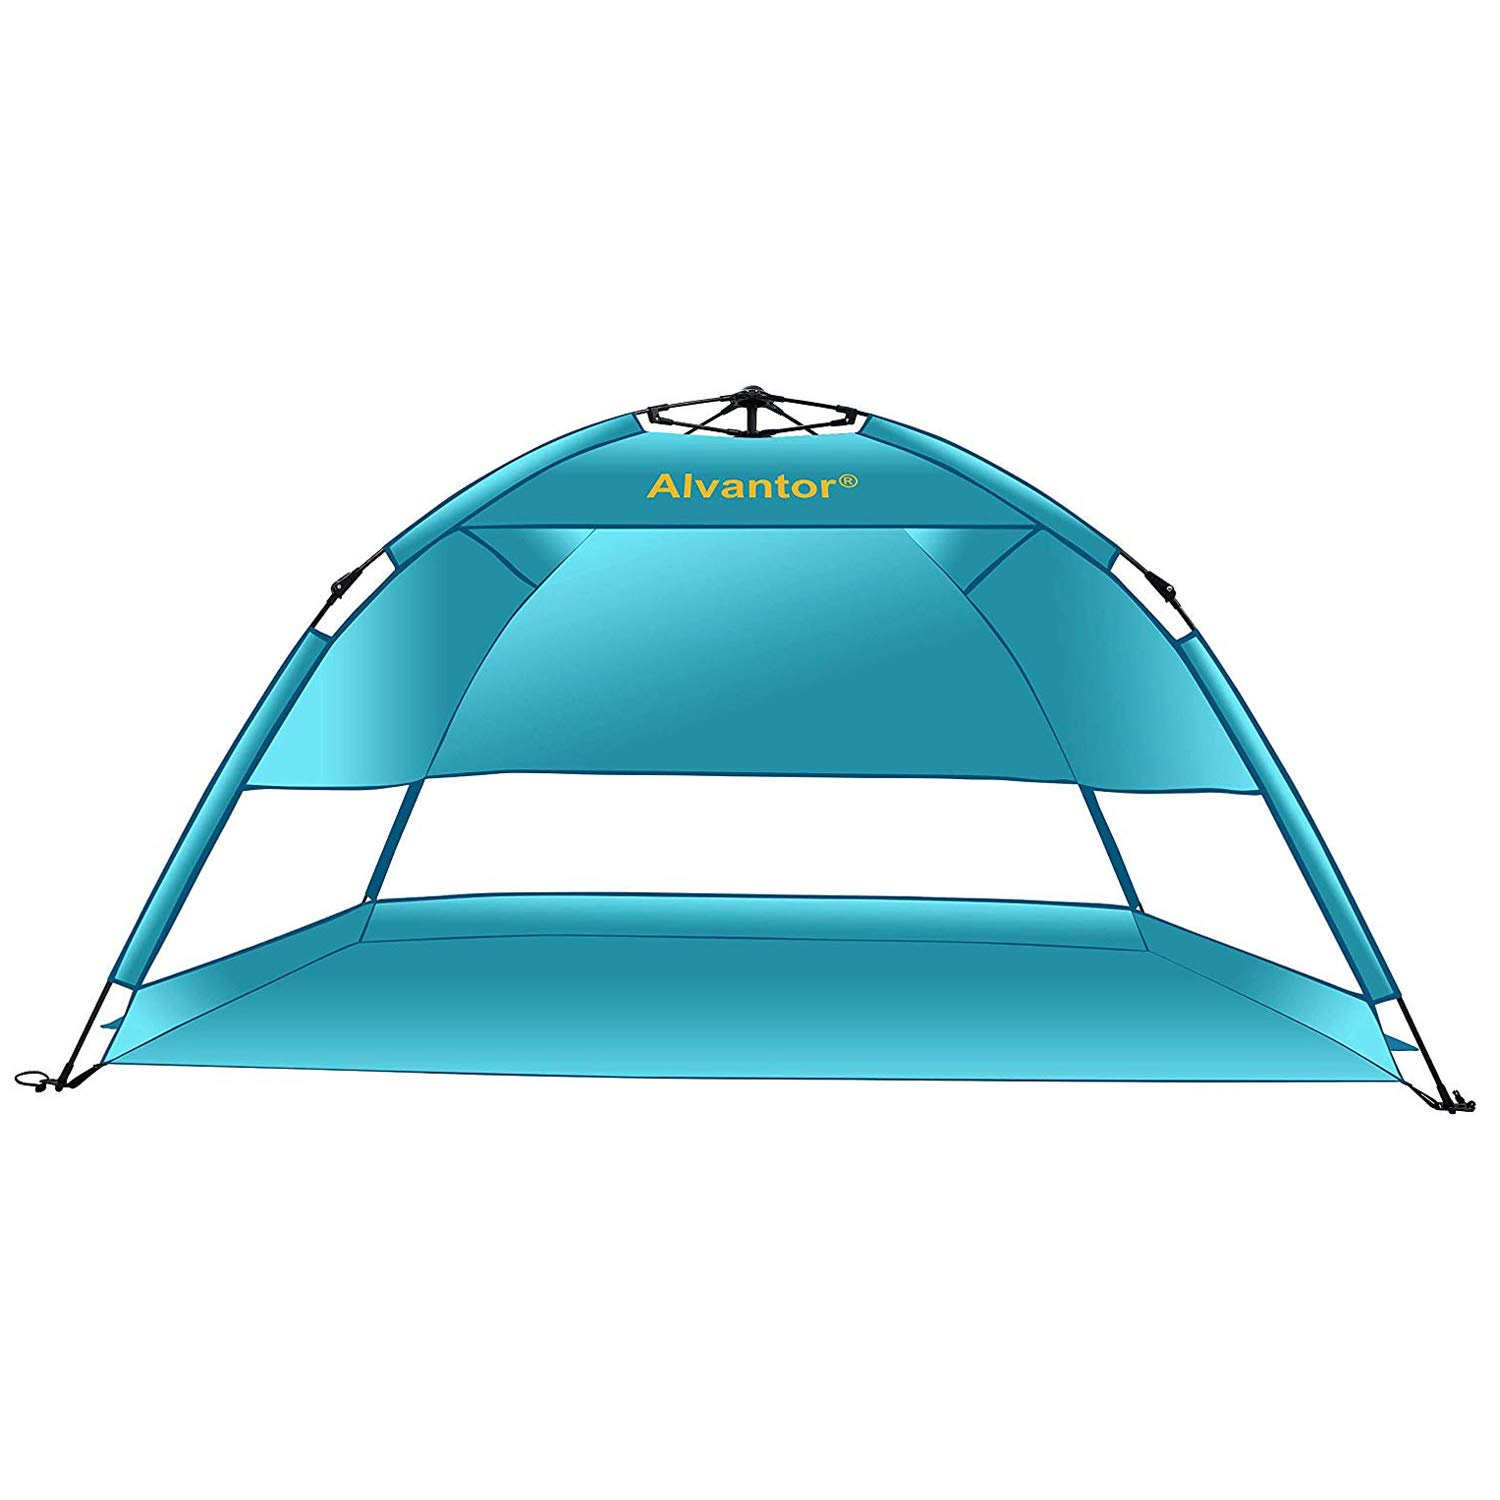 Alvantor Beach Tent Coolhut Plus Beach Umbrella Sun Shelter Cabana Automatic Pop Up UPF 50 Sun Shade Portable Camping Hiking Canopy Easy Set Up Light Weight Windproof Stable 2-3 Person by Alvantor